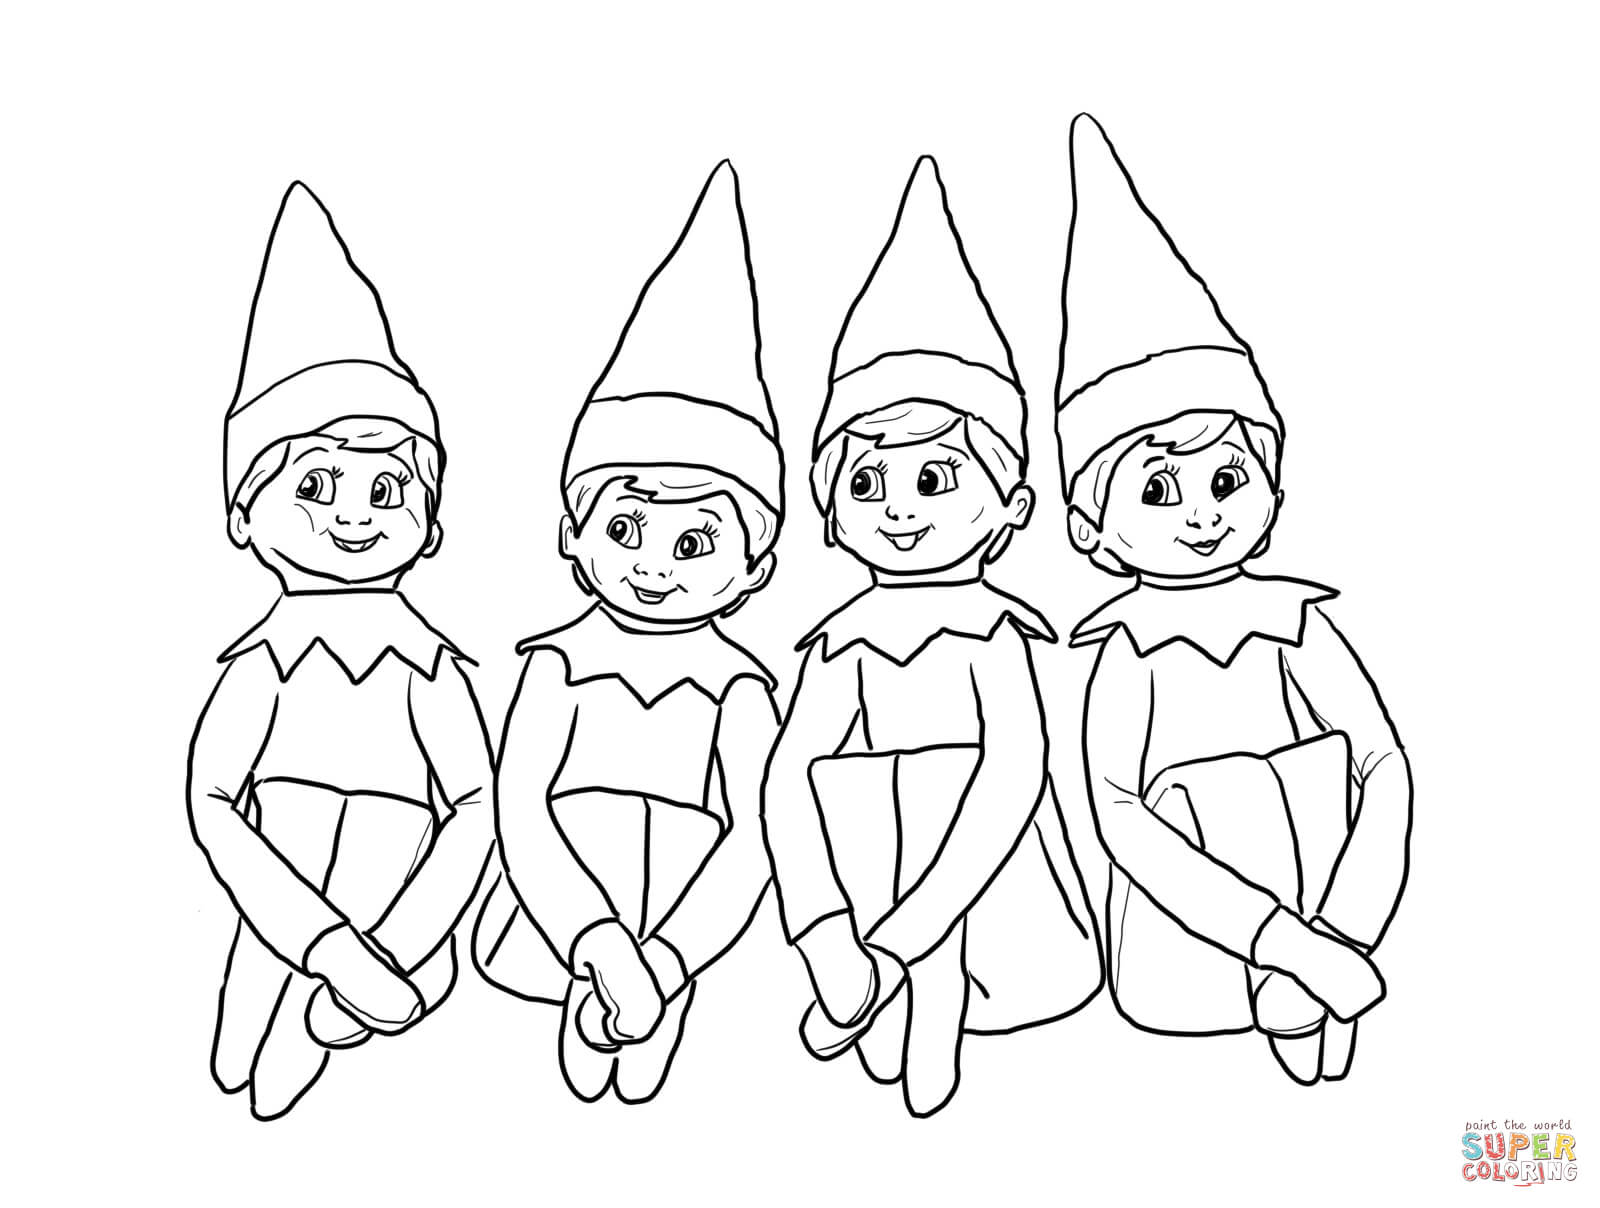 Pictures Christmas Elves Coloring Pages - Funny Christmas Coloring ... | 1208x1600